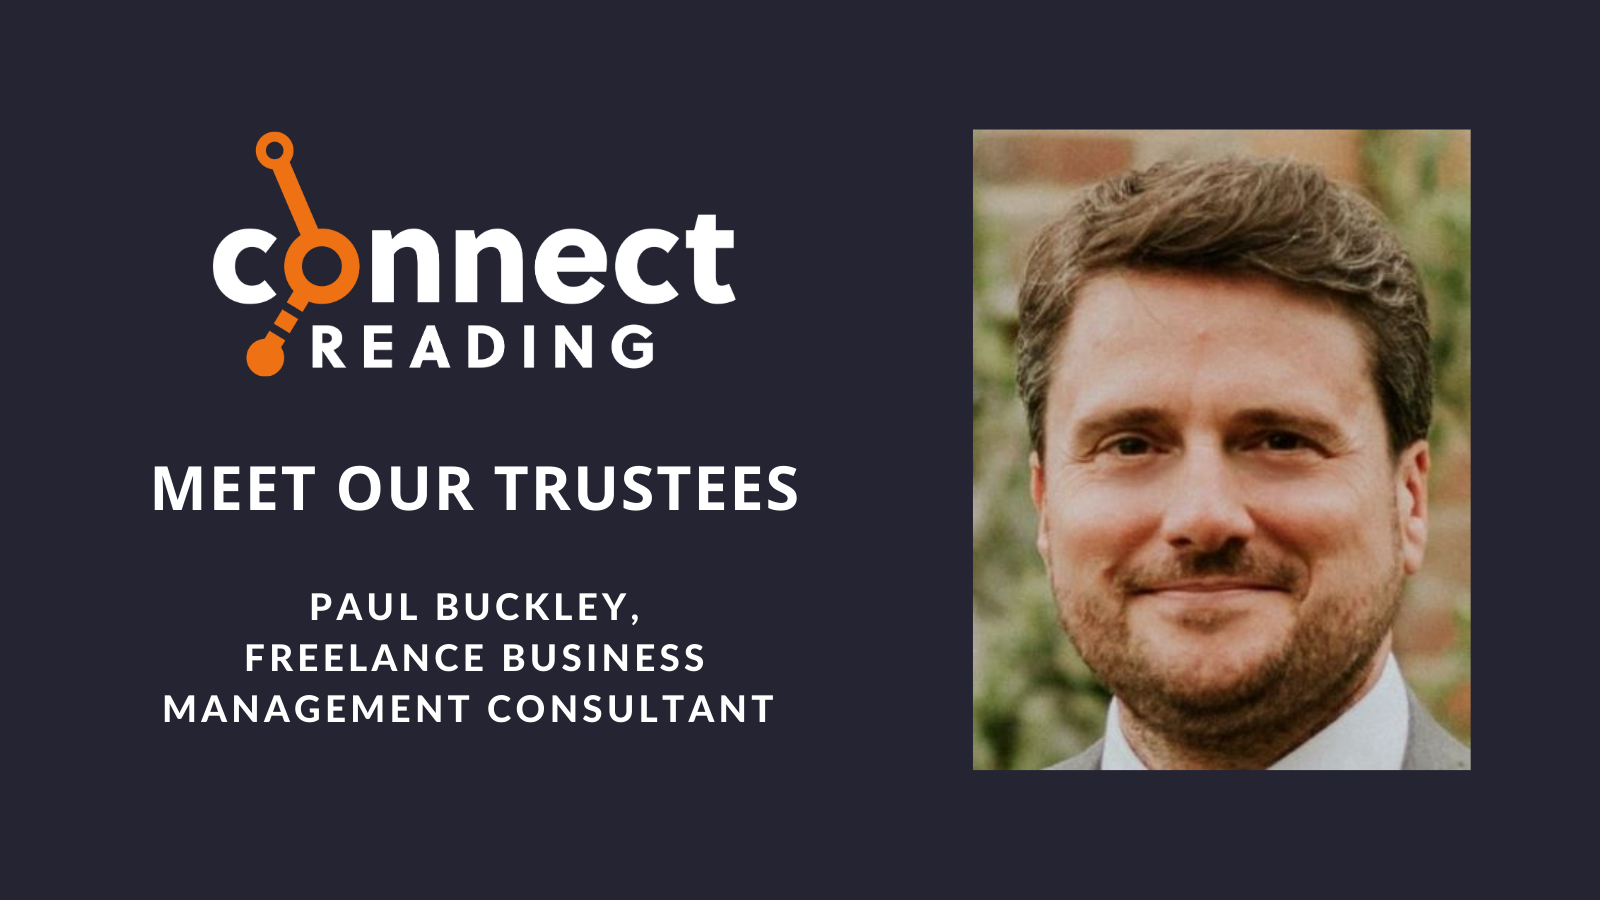 Meet our Trustees: Paul Buckley